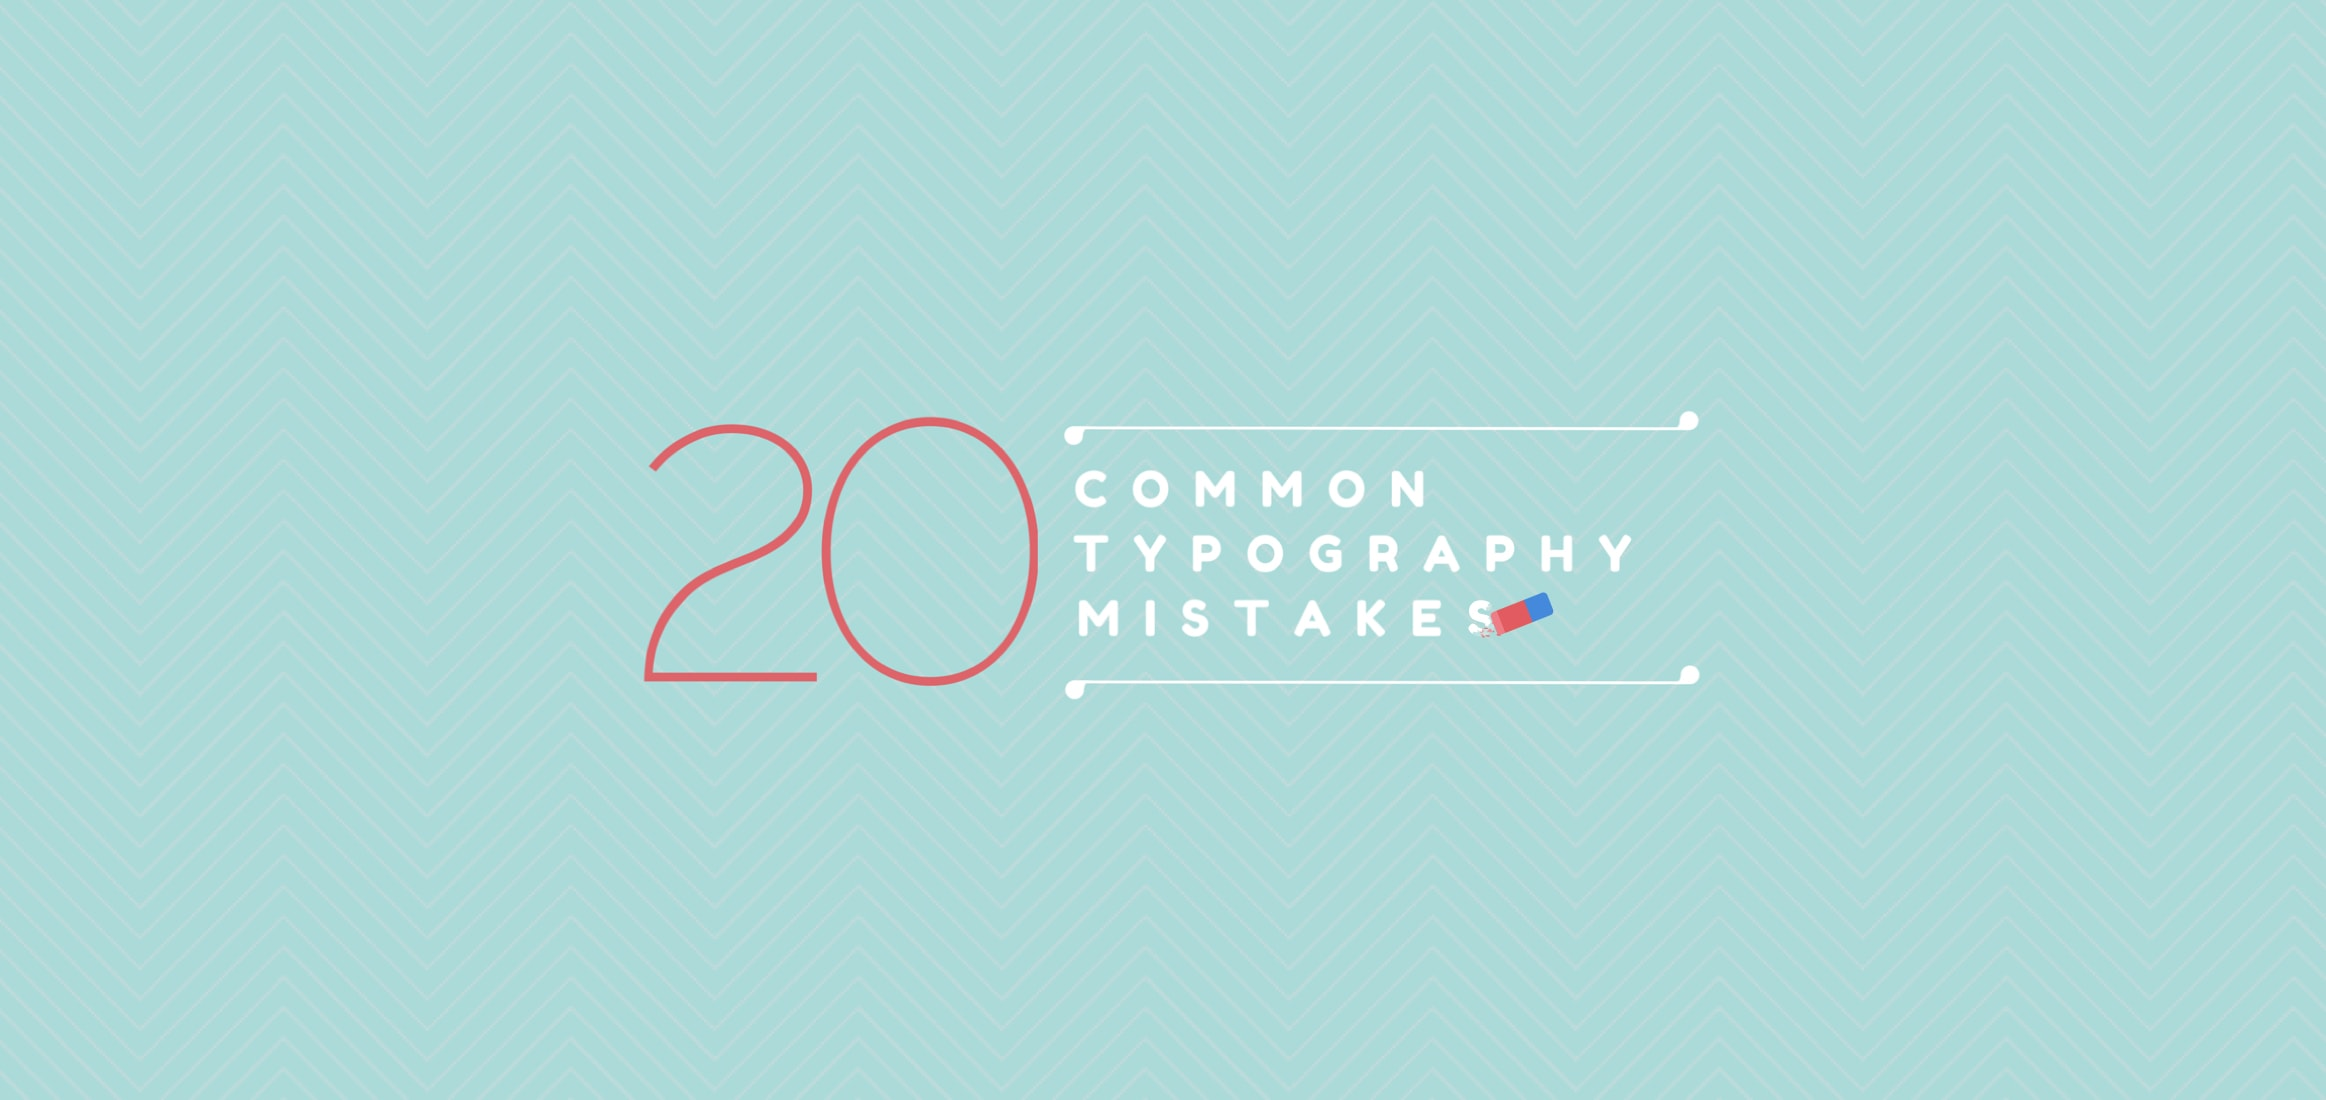 20-common-typography-mistakes